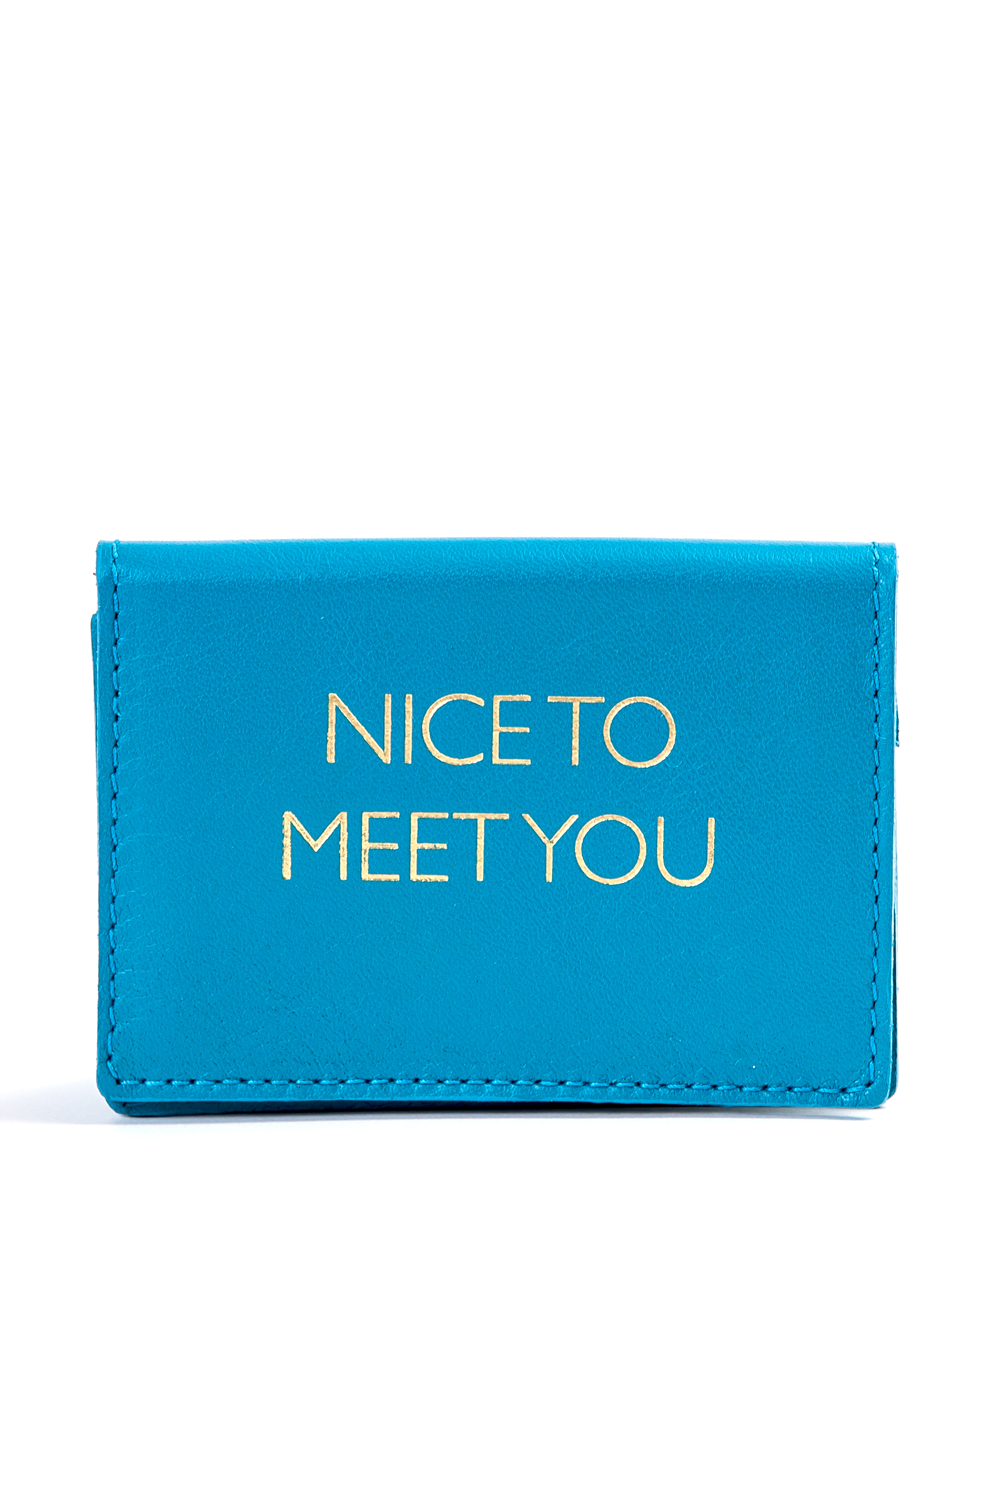 Mel Boteri | 'Nice To Meet You' Cardholder | Turquoise Leather | Front